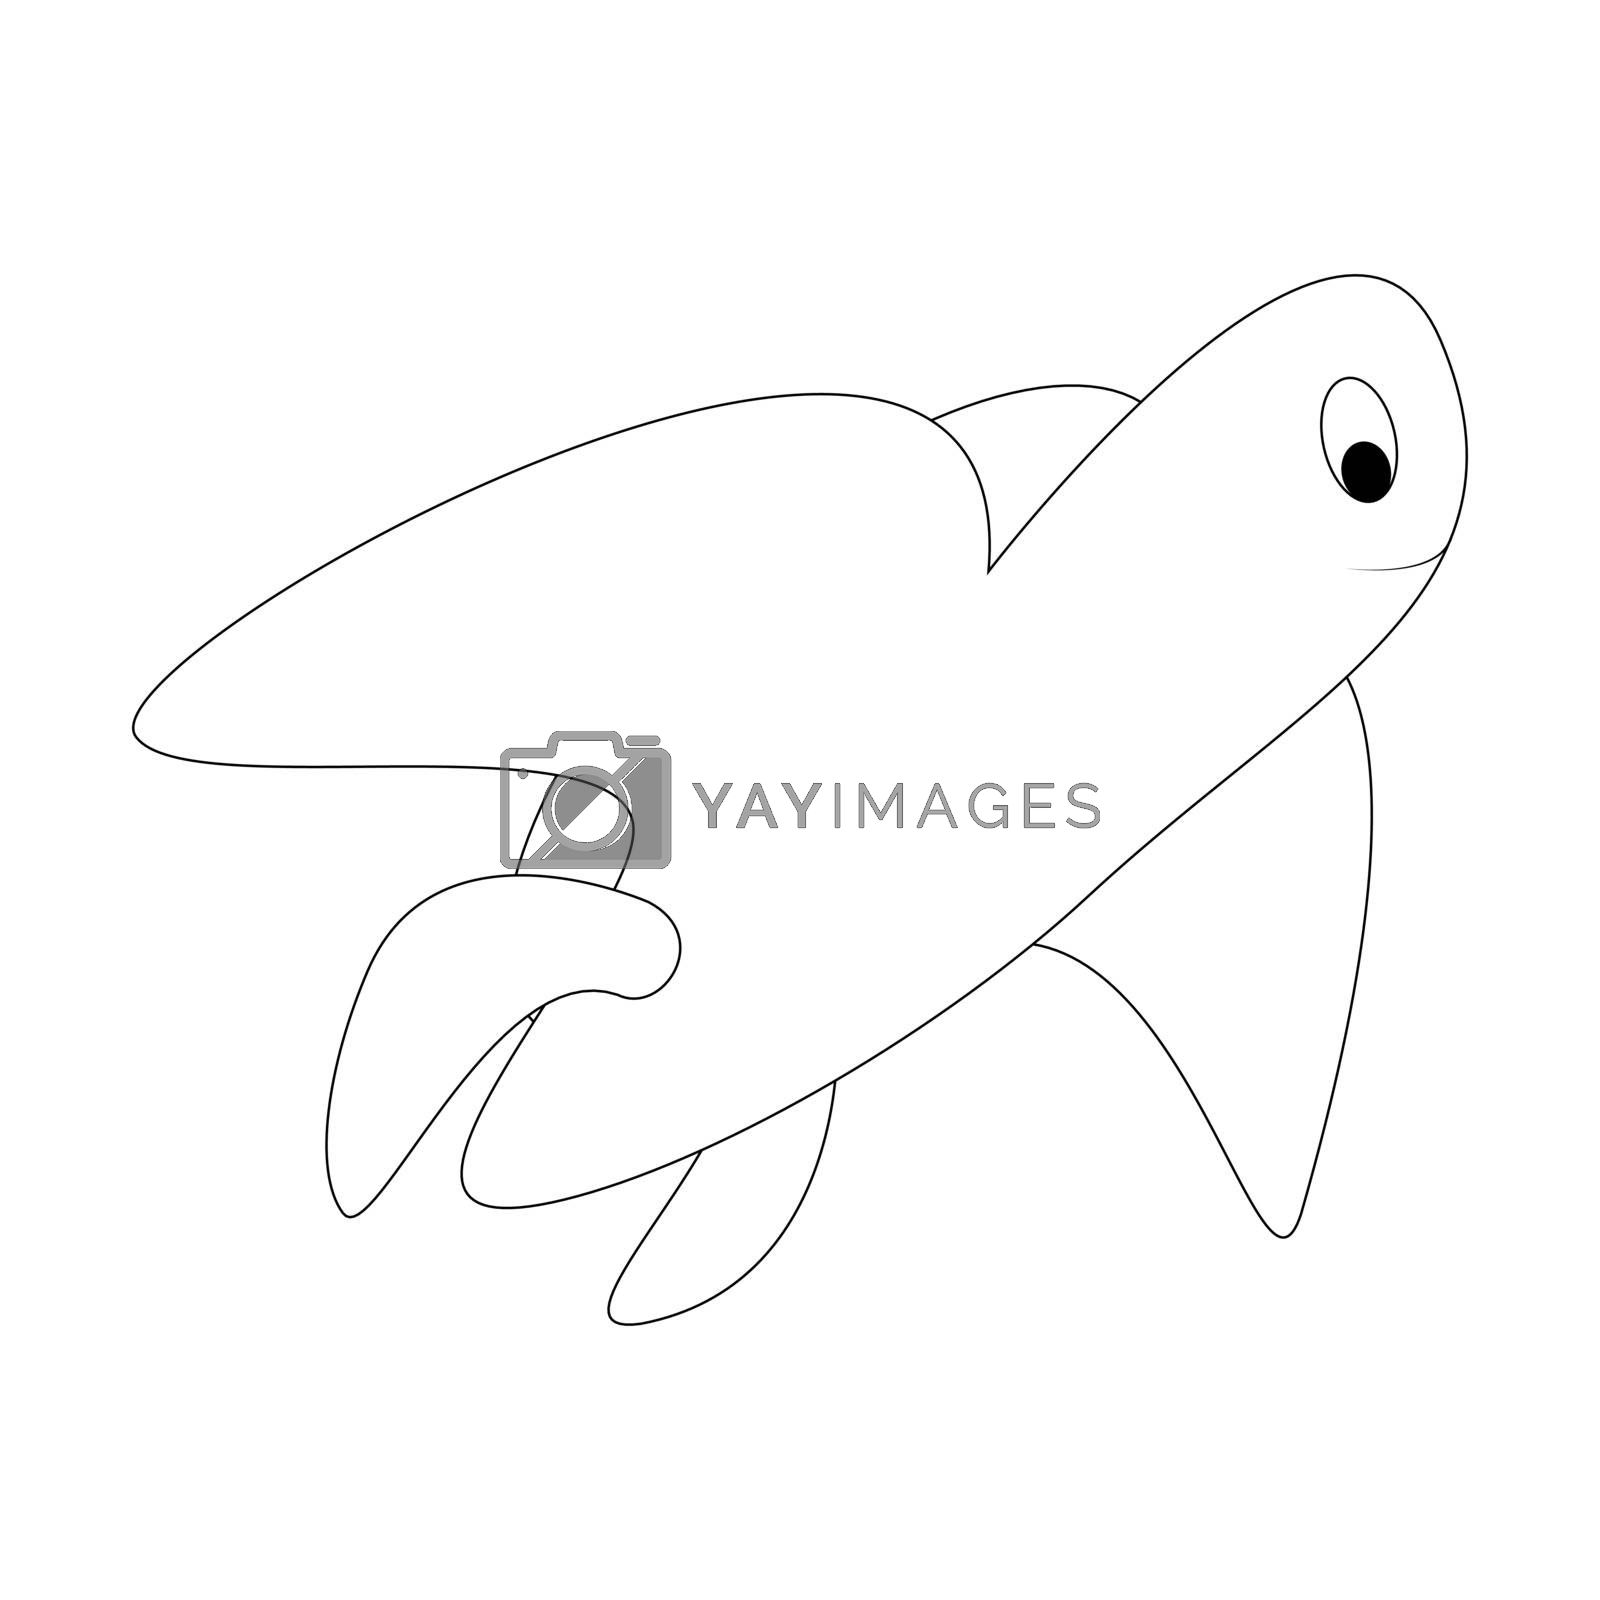 Cartoon turtle outline. Vector illustration isolated on white background. Decoration for greeting cards, posters, flyers, prints for clothes.